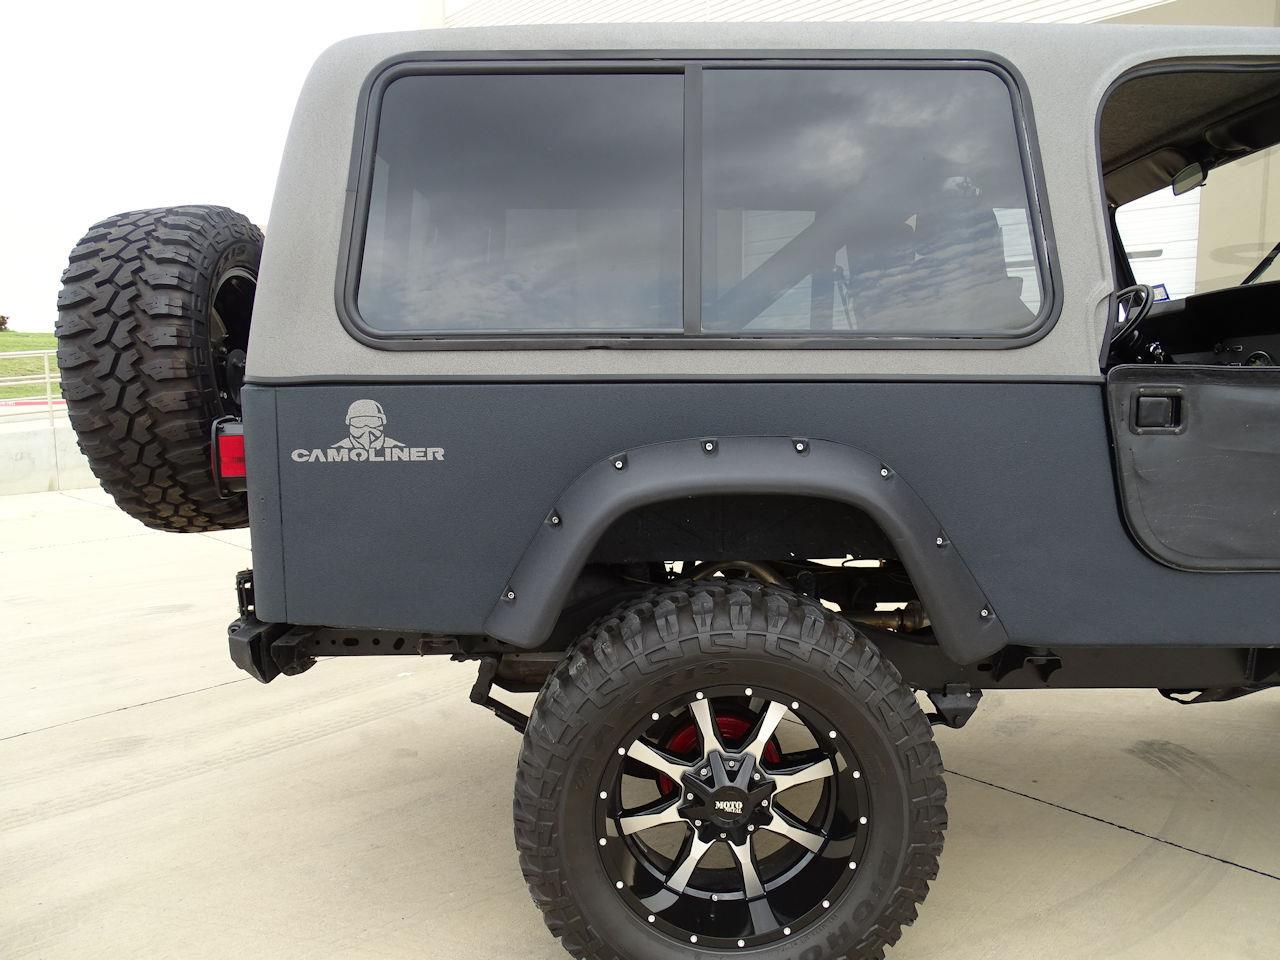 Large Picture of 1981 CJ8 Scrambler located in Texas - $38,000.00 Offered by Gateway Classic Cars - Dallas - LRUP